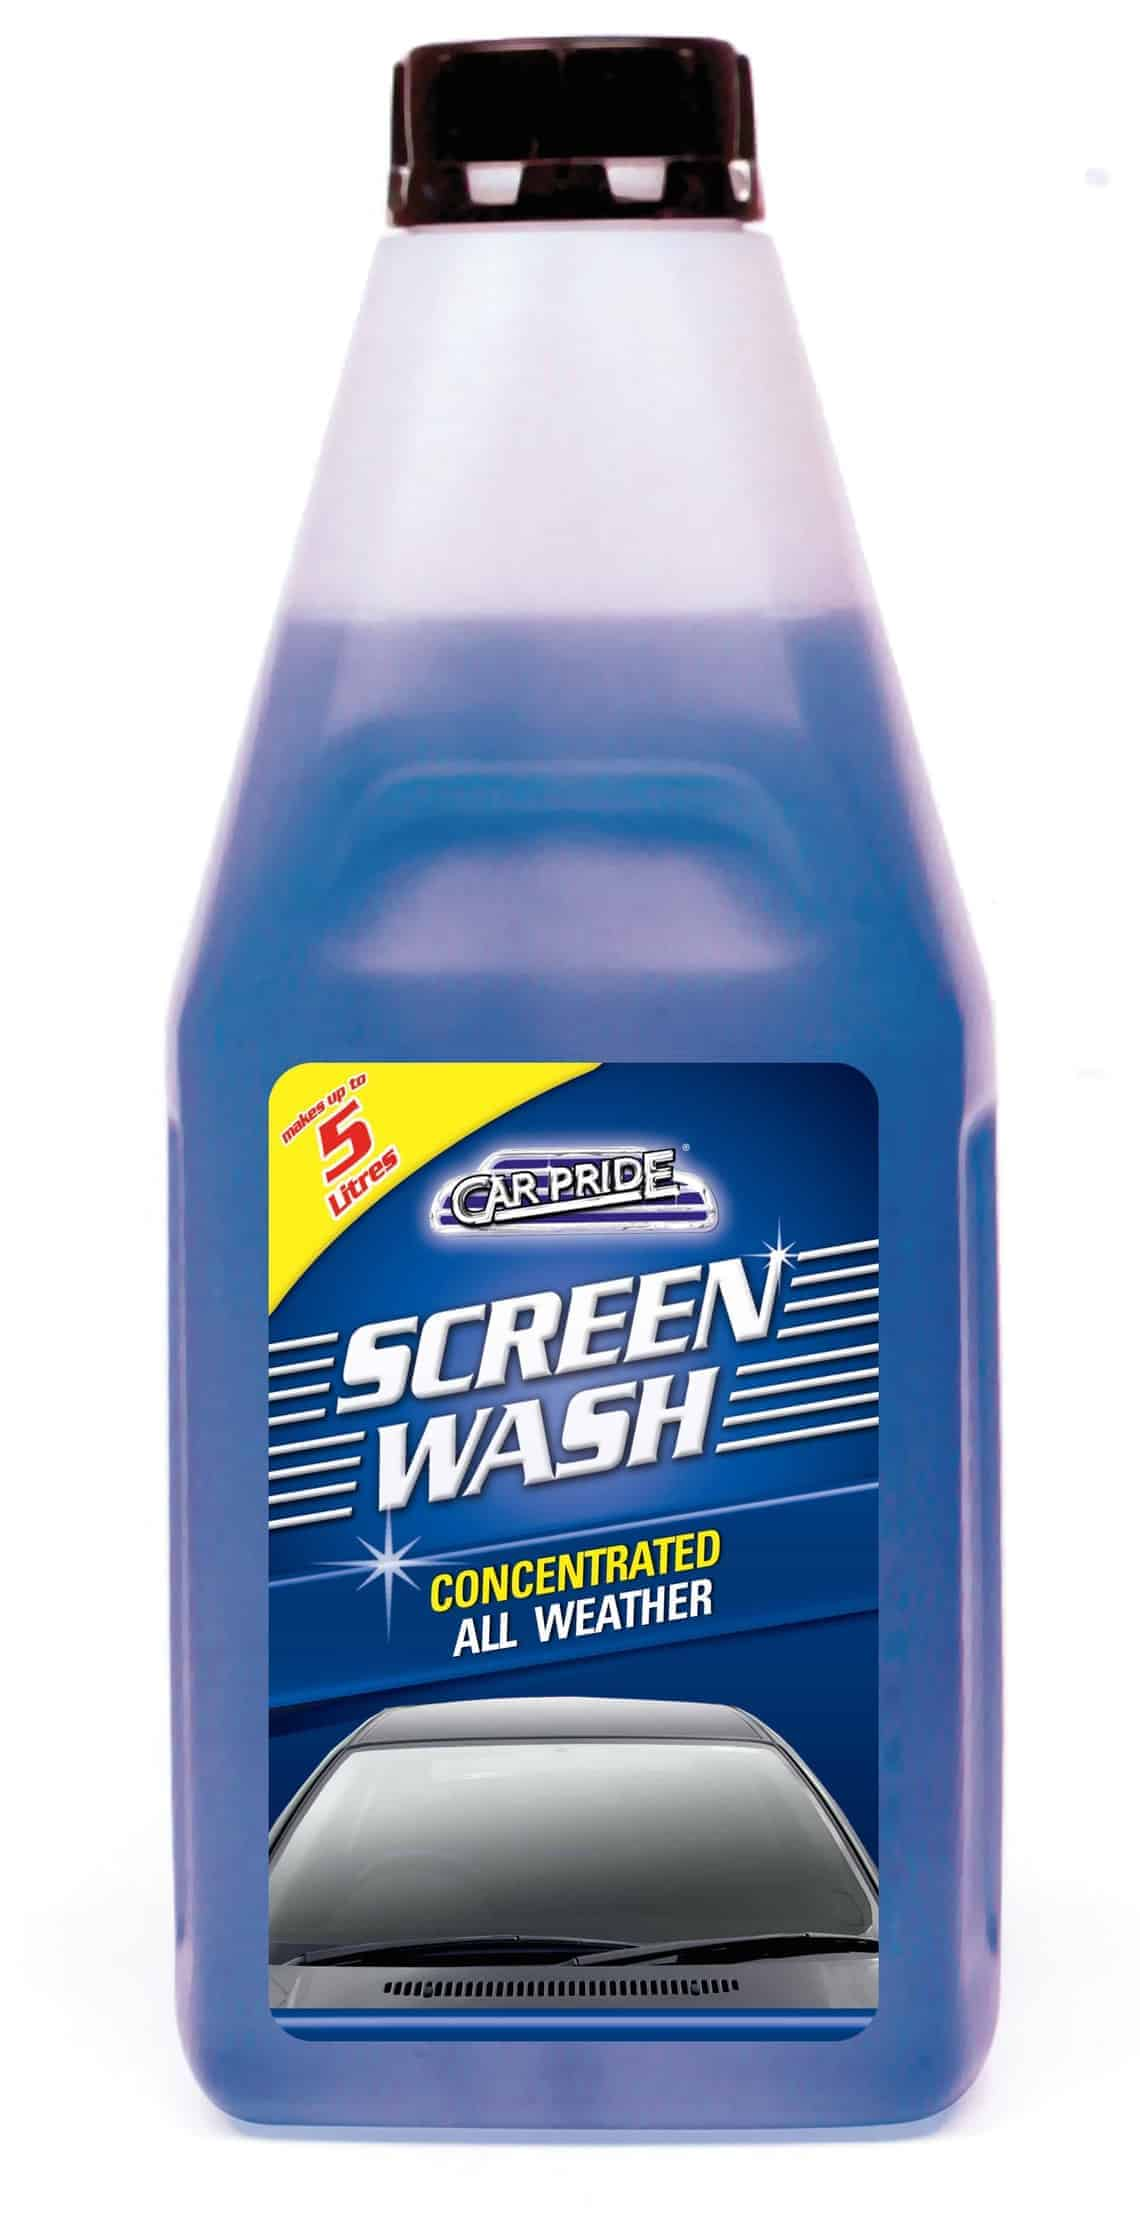 Car Pride 1ltr Screen Wash